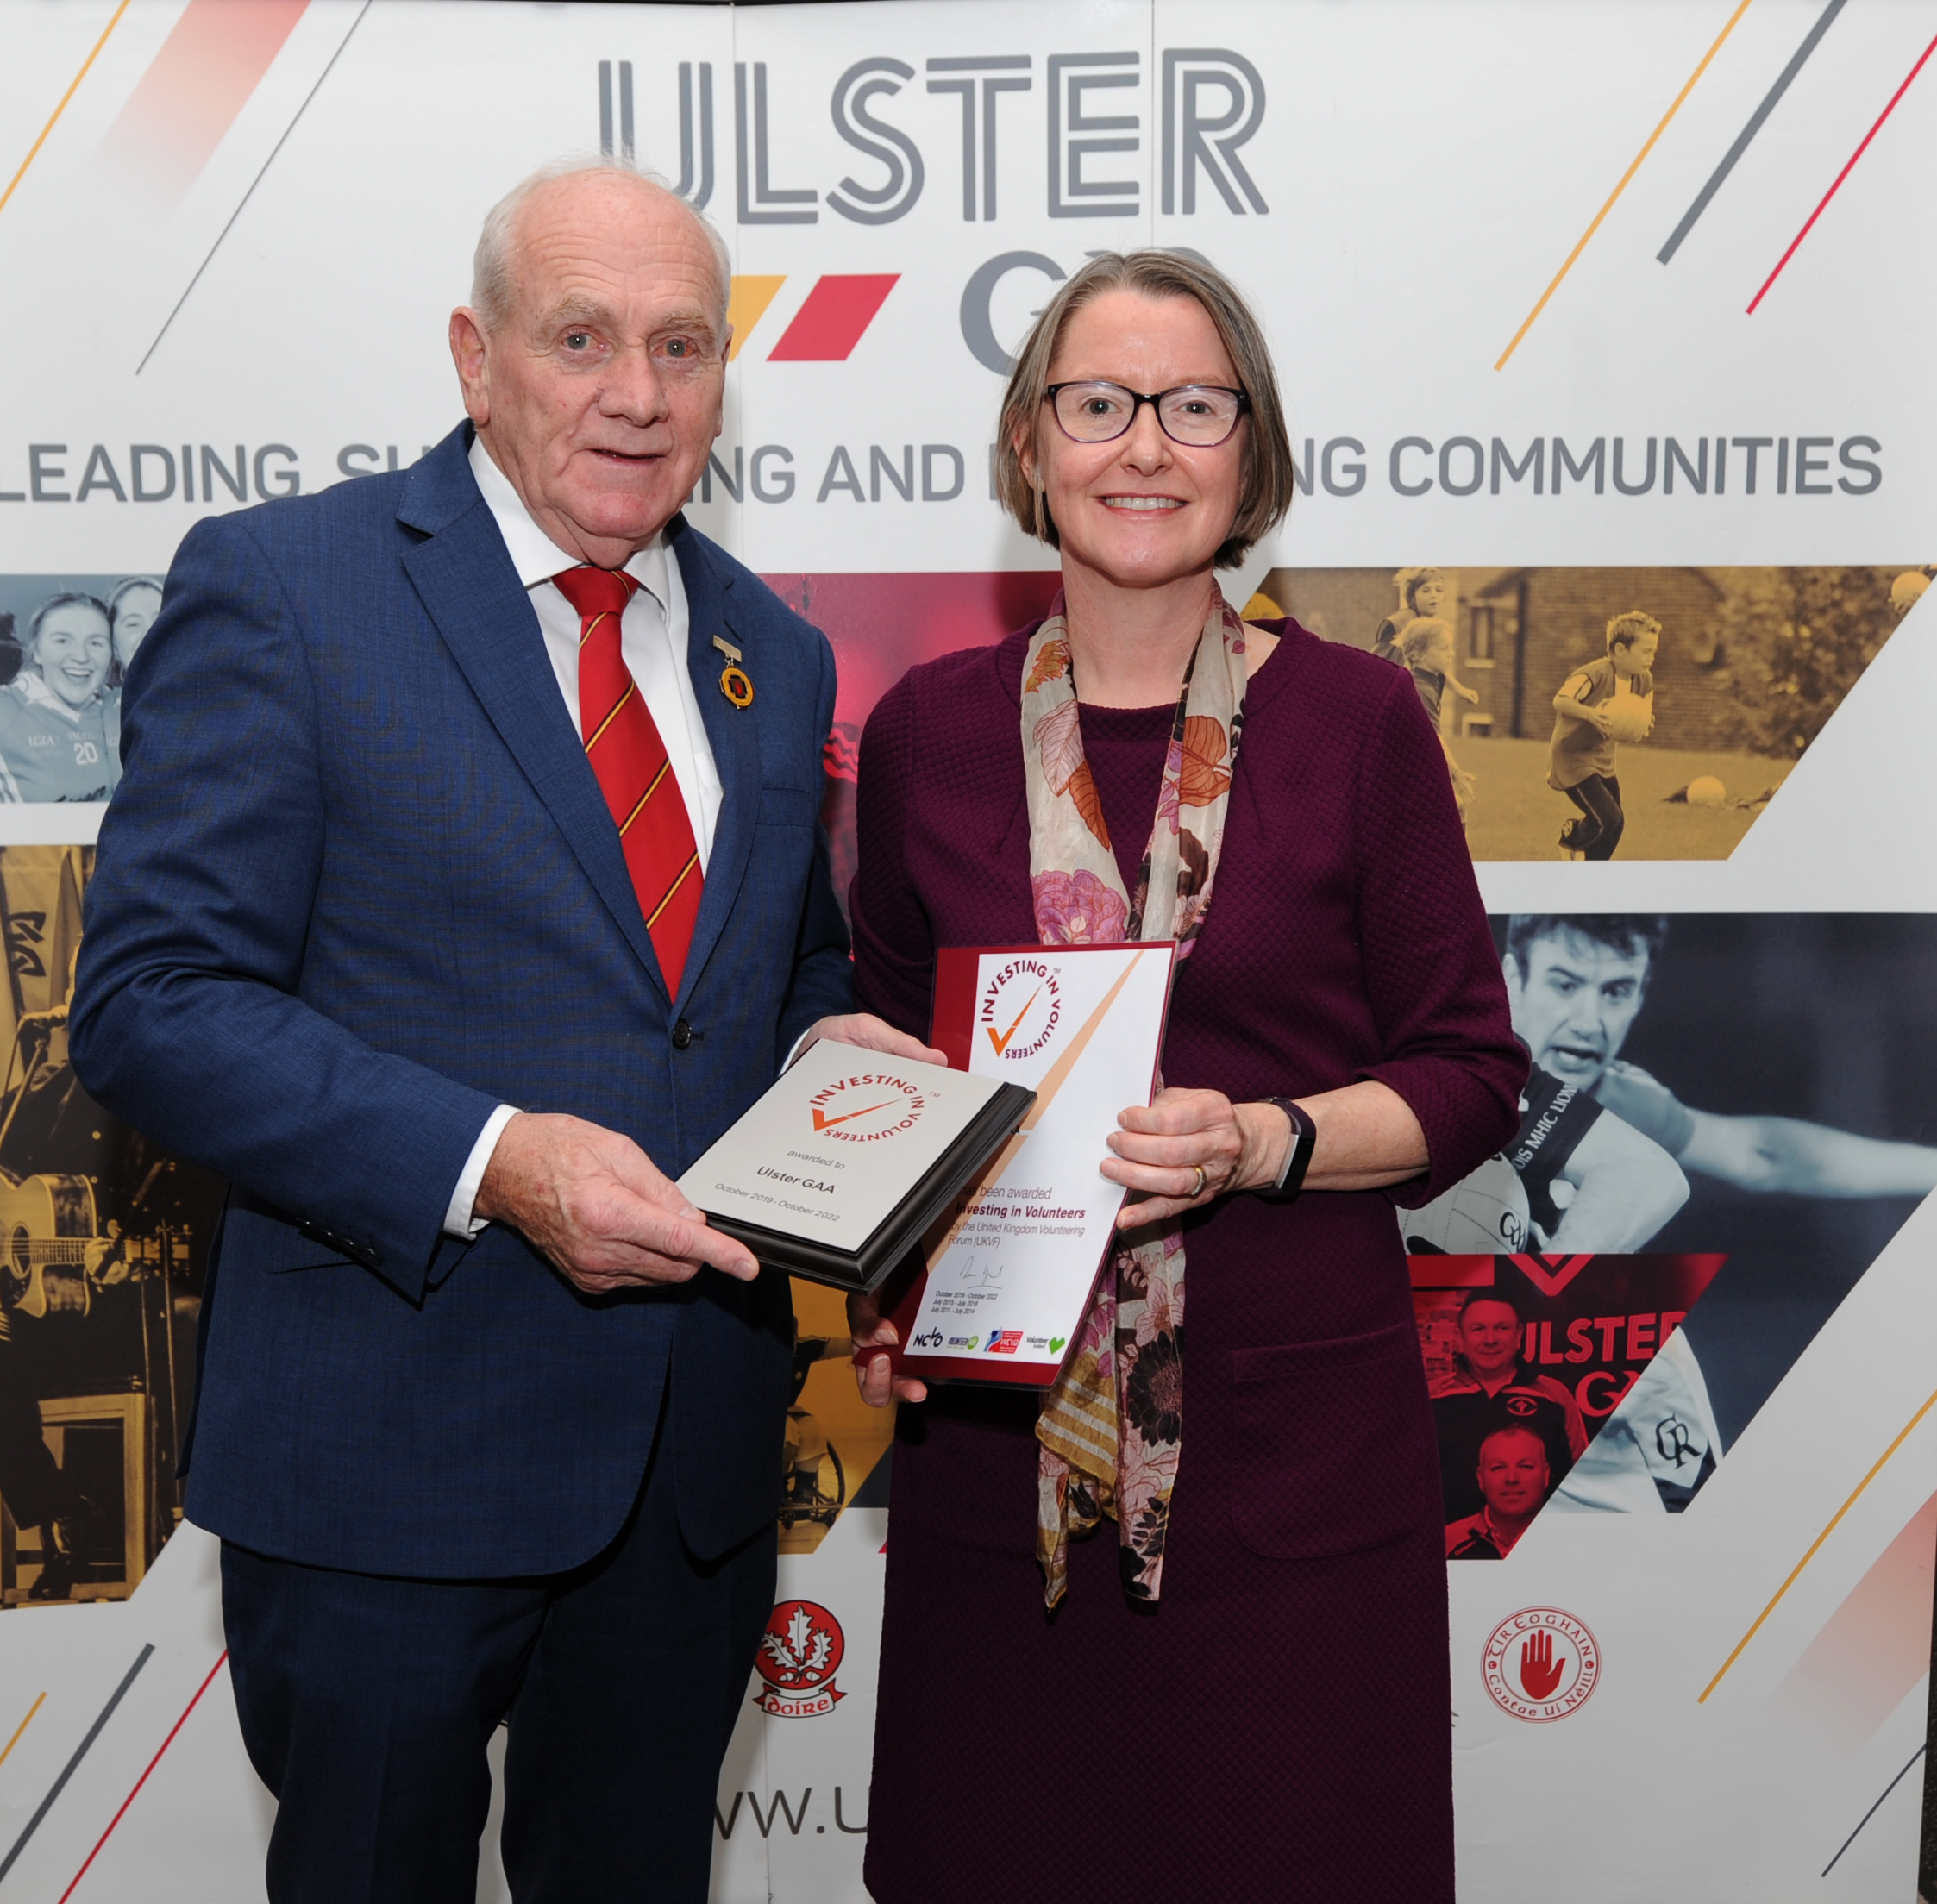 Ulster GAA achieve Investing in Volunteers Standard